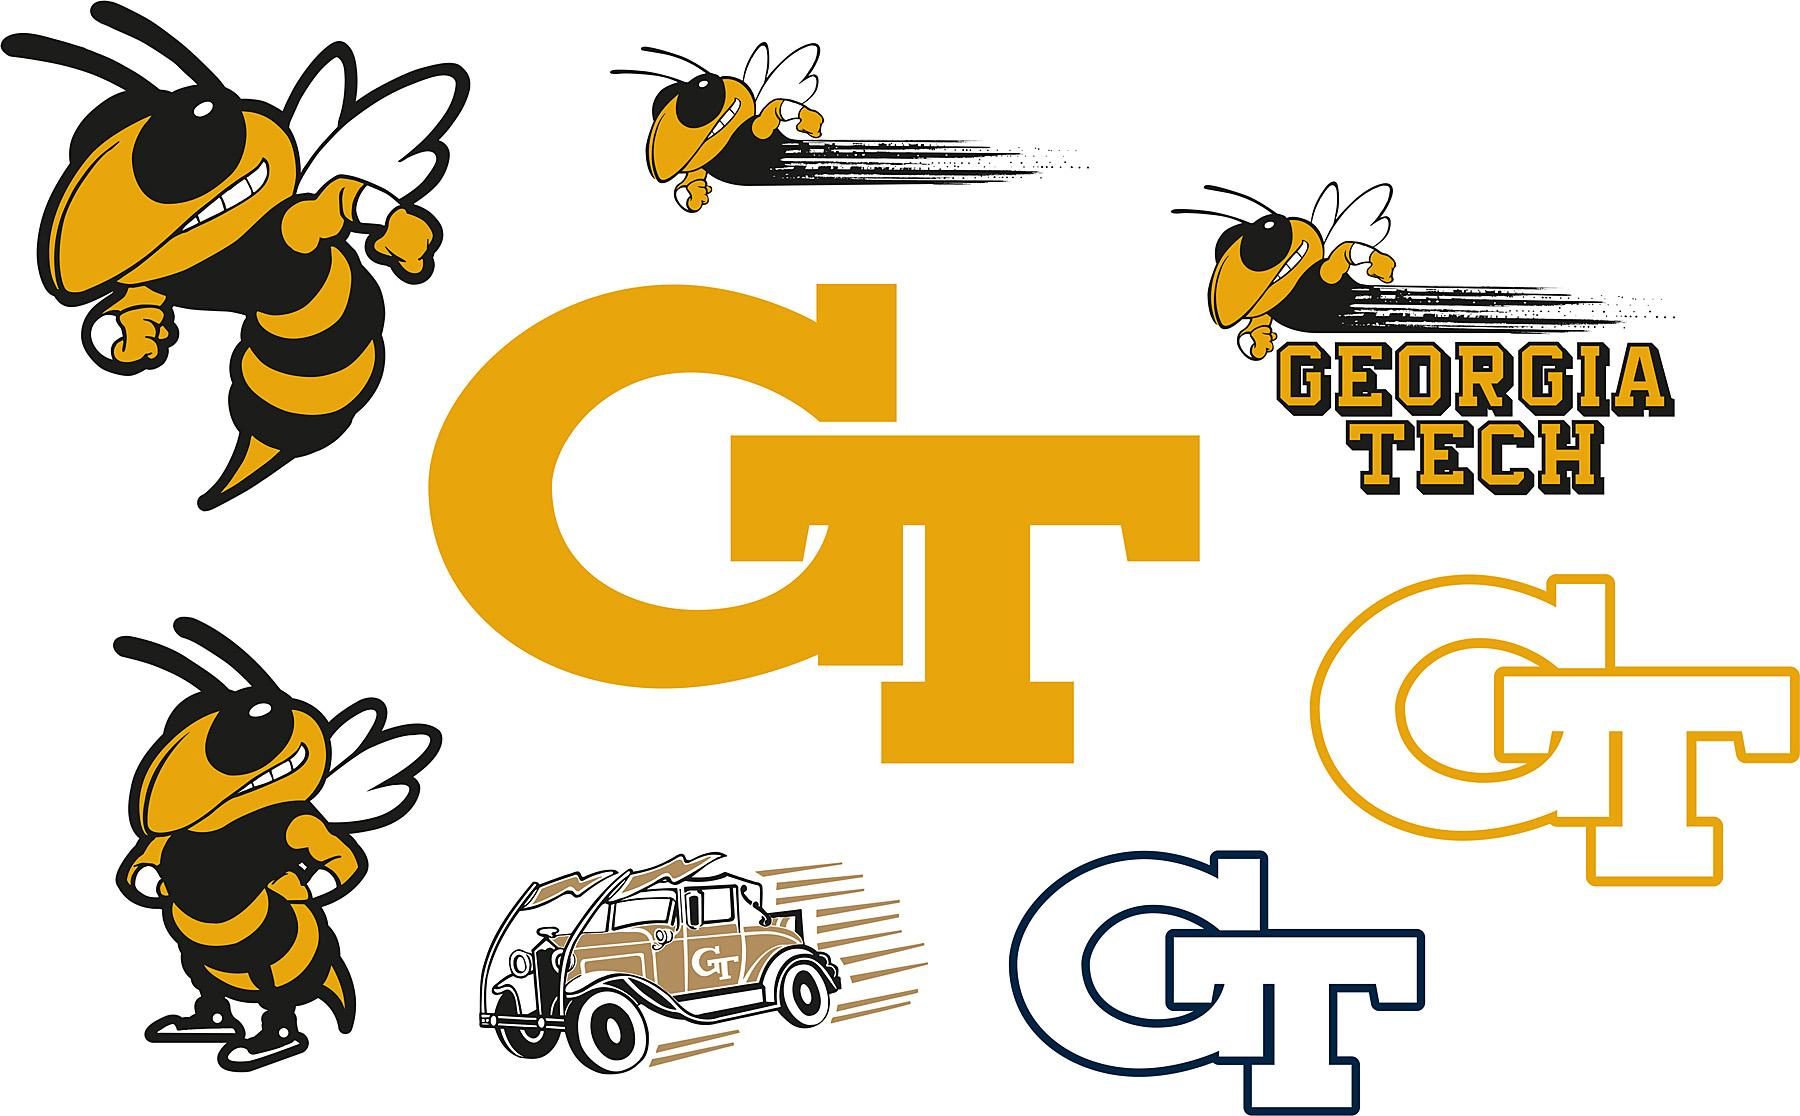 Brewster Wallpaper Georgia Tech Yellow Jackets Logo